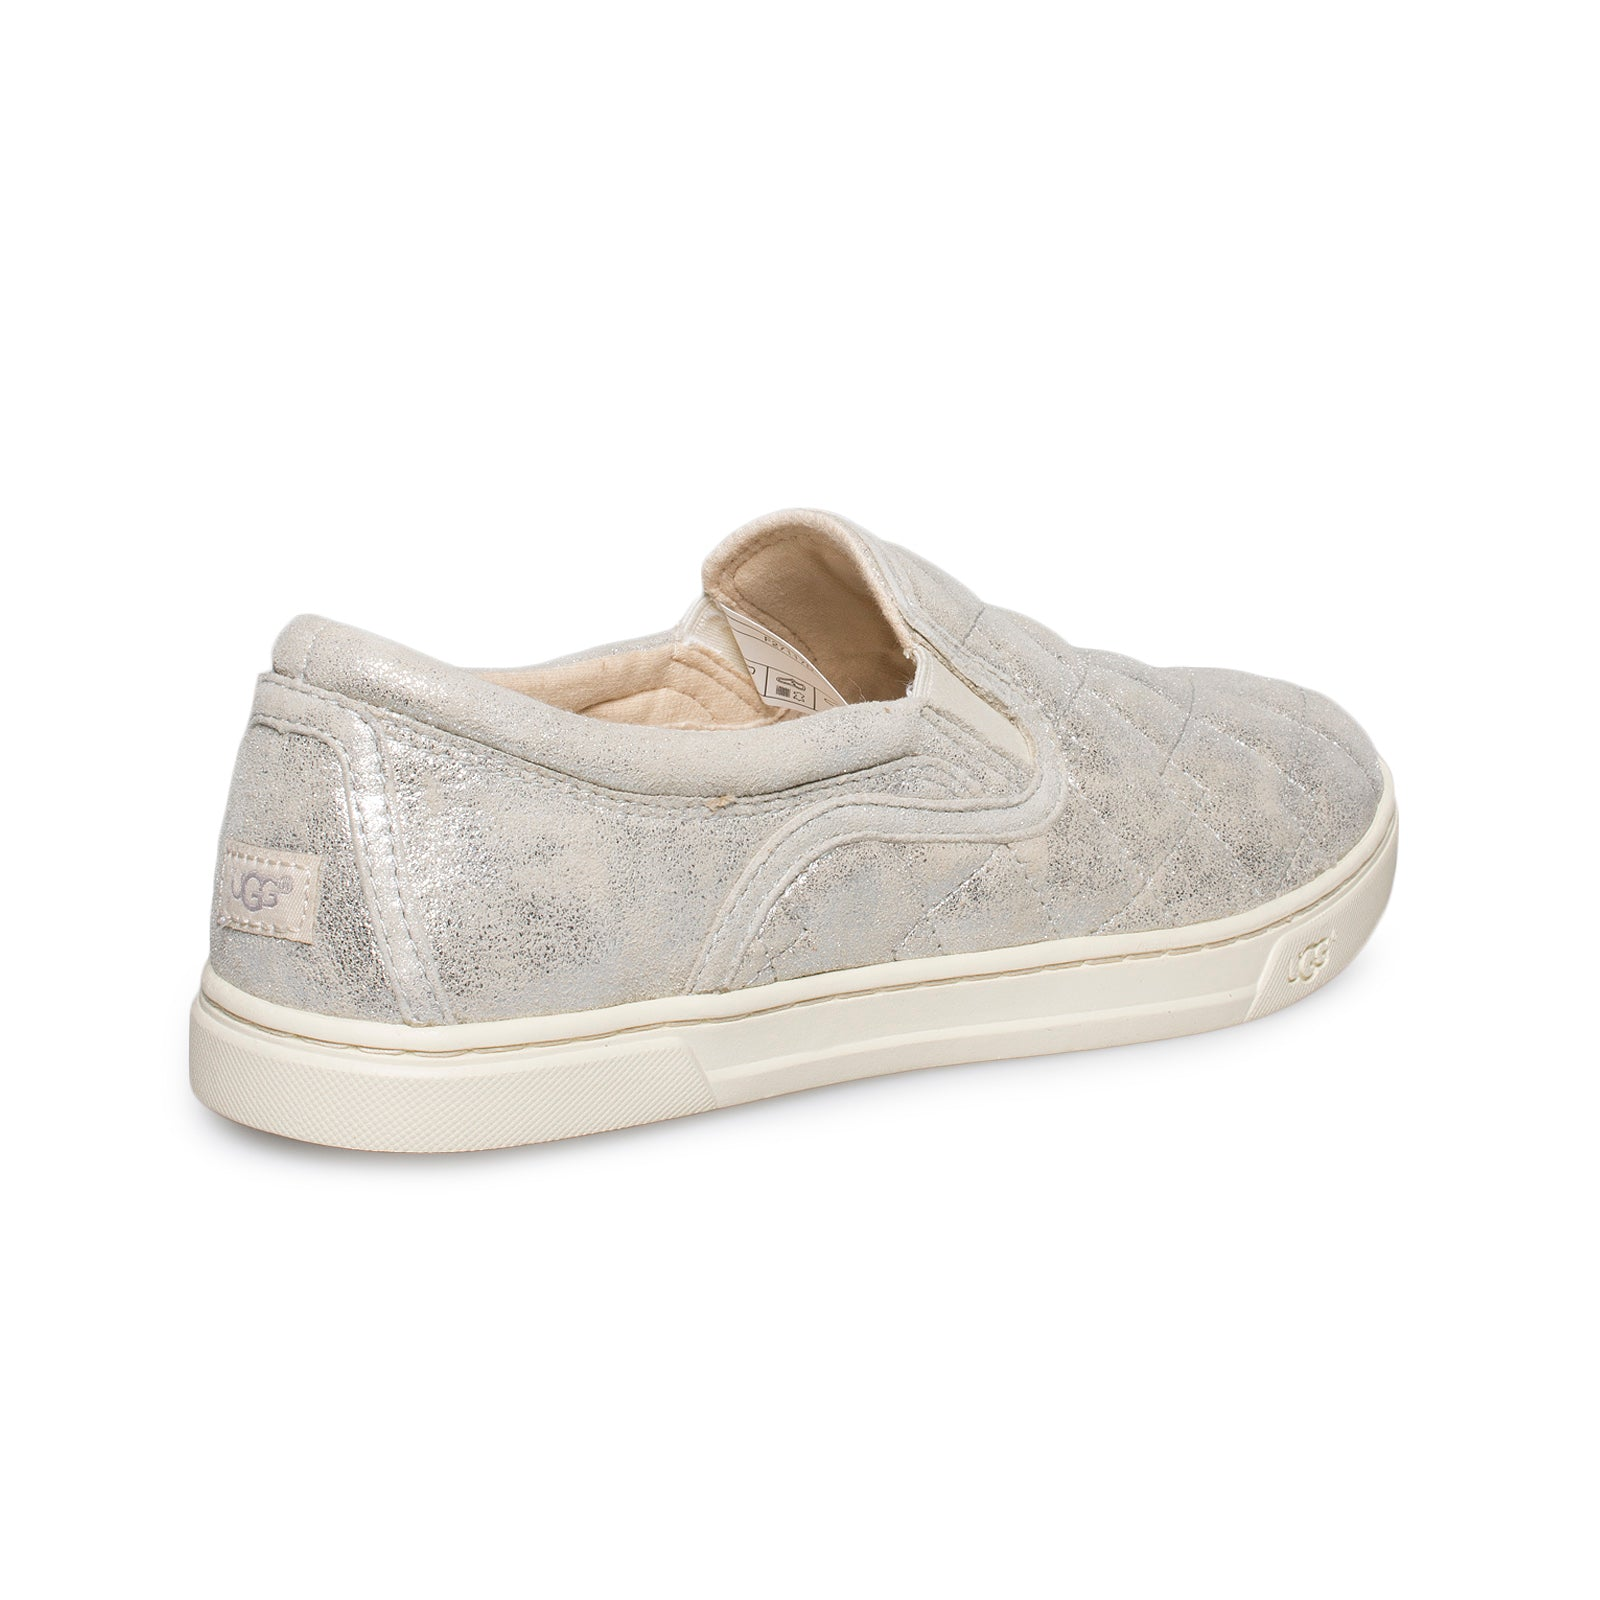 cacdfb5e280b7 UGG Fierce Deco Quilt Stardust Silver Shoes